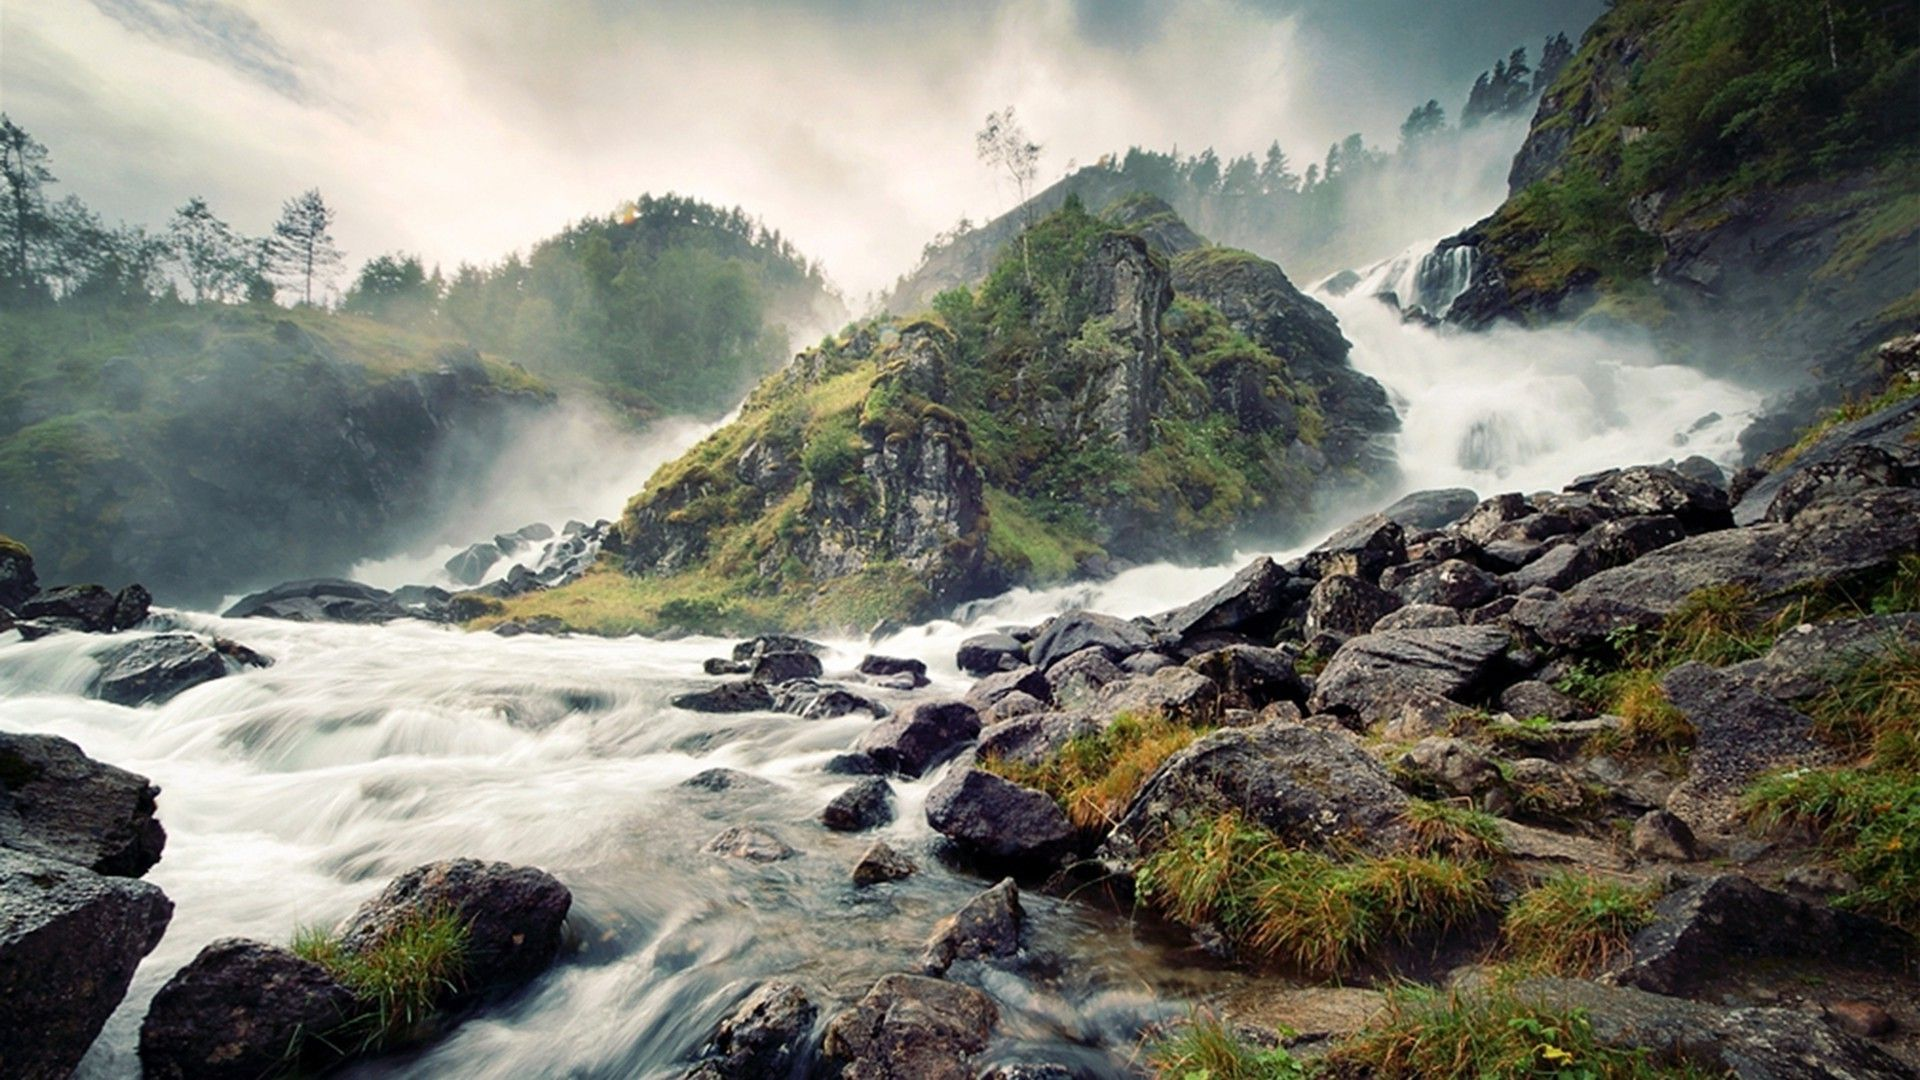 Norway Nature Hd Wallpapers River Tablet Norway Nature Norway Camping Norway Wallpaper